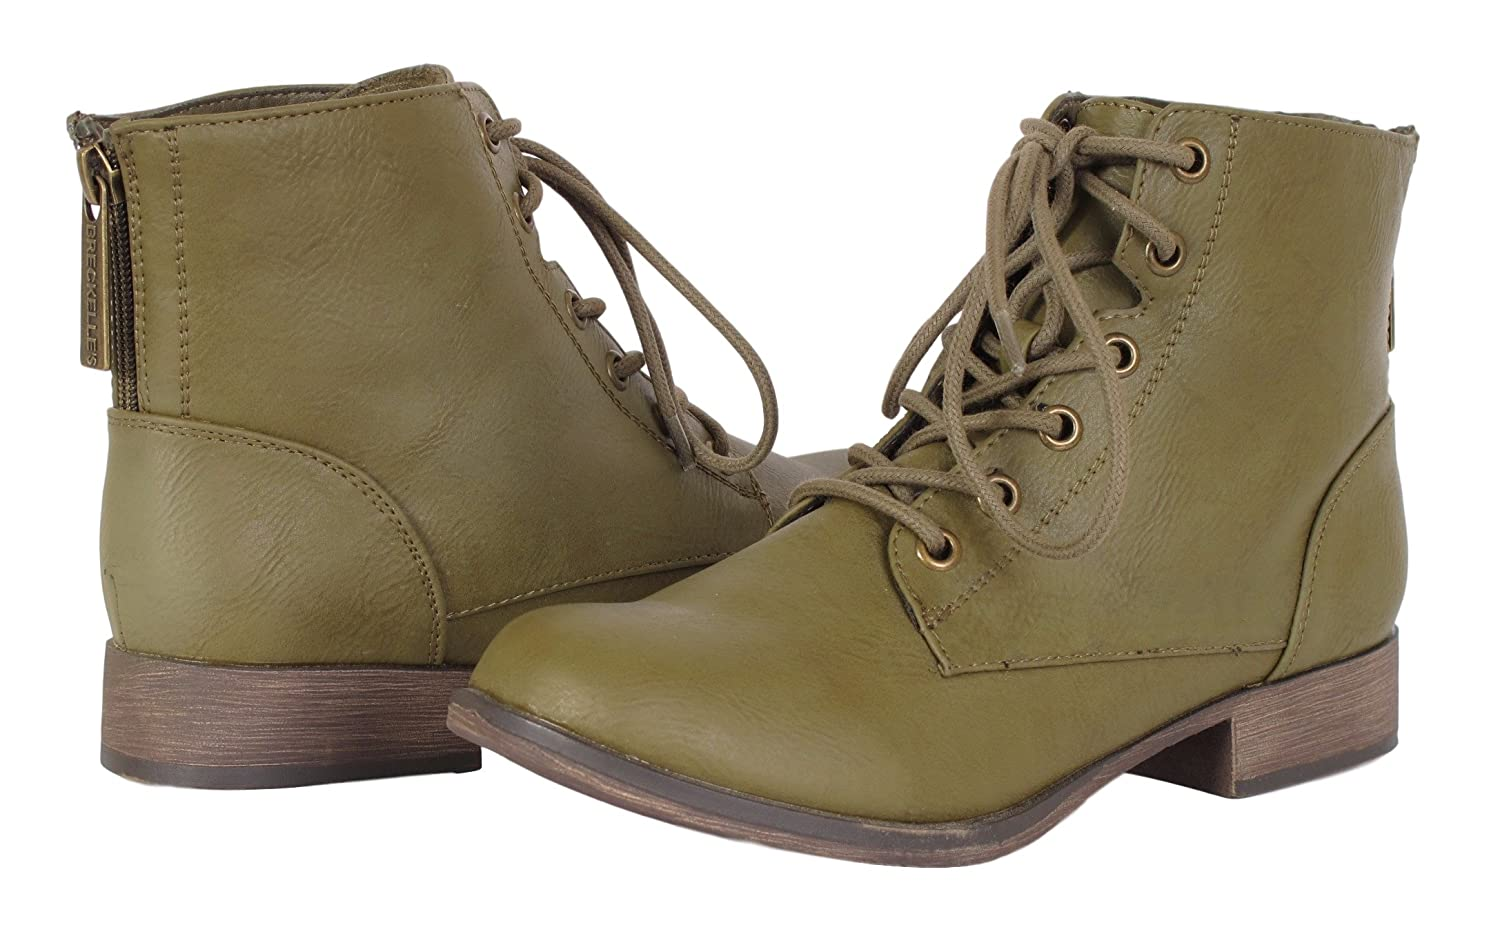 6088ee4c1d034 Amazon.com | Breckelle's Women's Georgia-43 Faux Leather Ankle High Lace Up  Combat Boots, 6 B(M) US, Olive | Ankle & Bootie